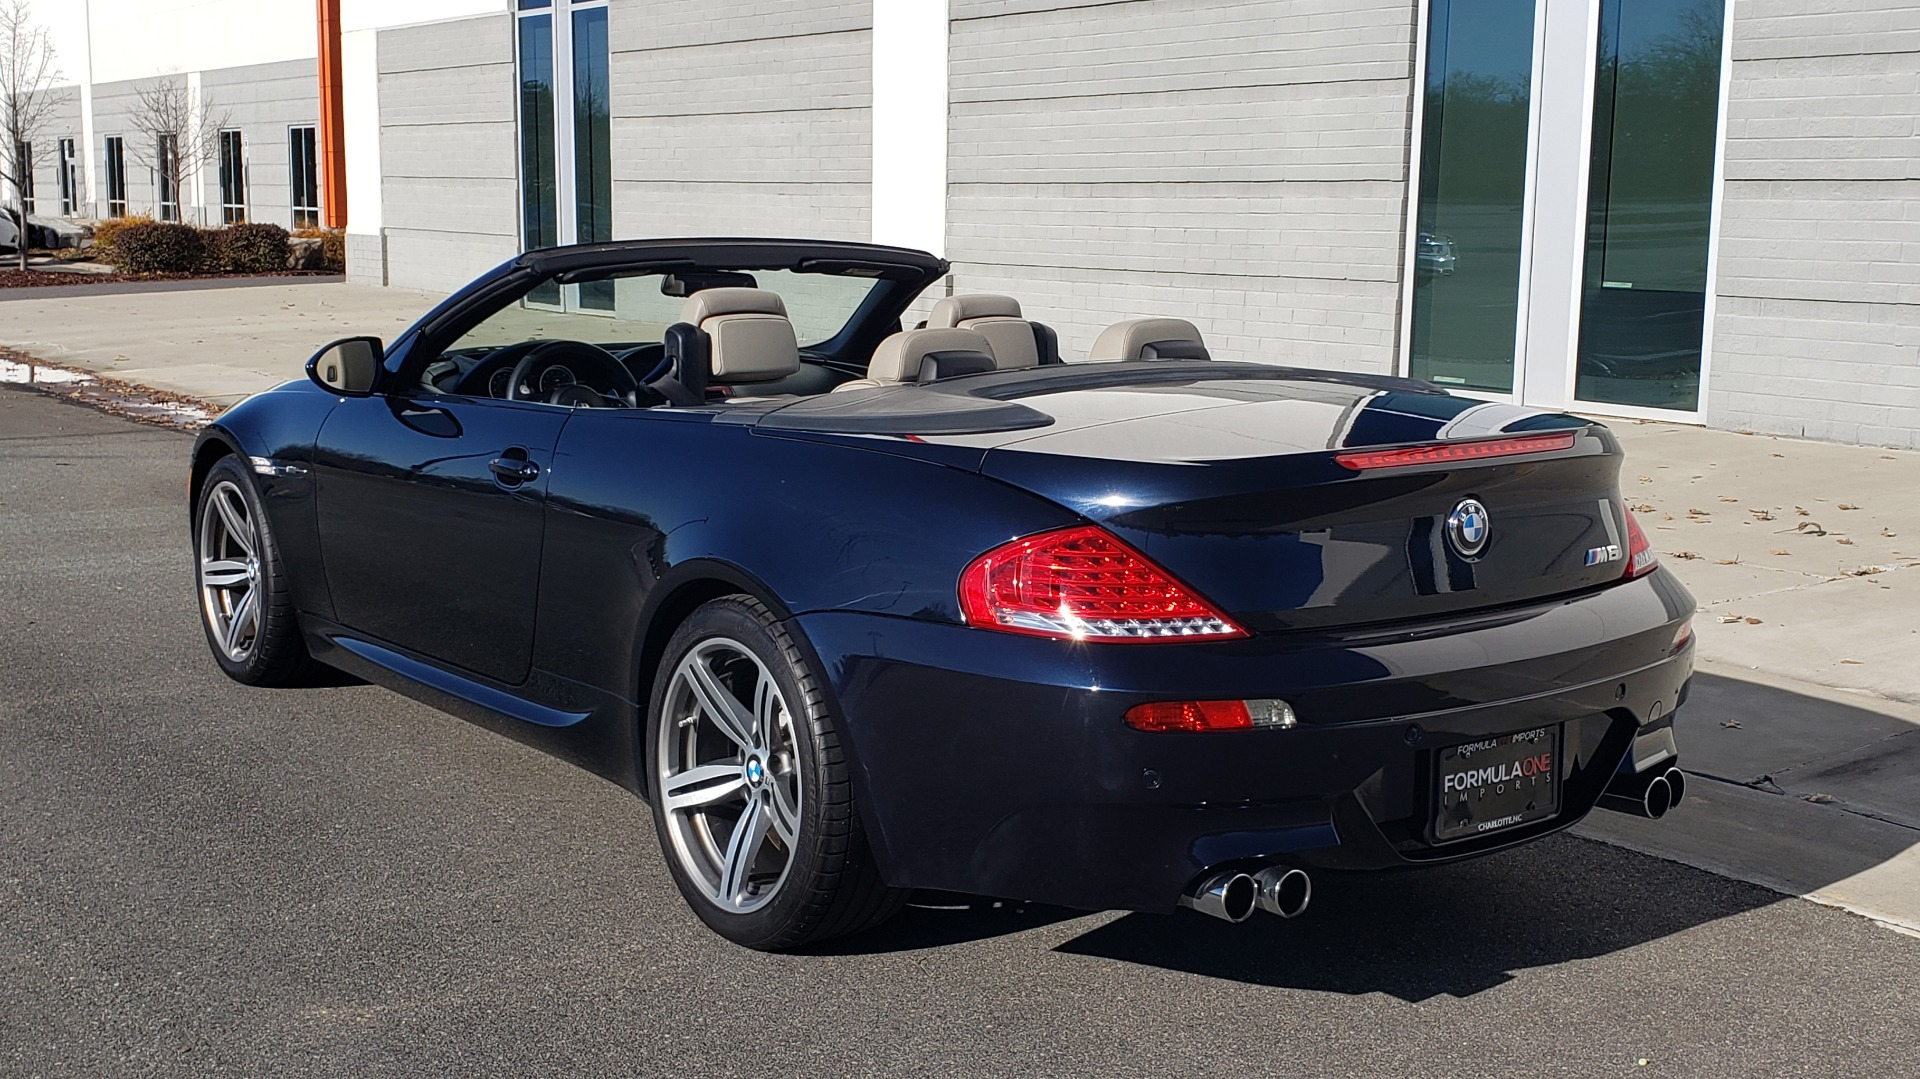 Used 2009 BMW M6 CONVERTIBLE / 5.0L V10 (500HP) / PREM SND / HUD / 19IN WHEELS for sale $24,999 at Formula Imports in Charlotte NC 28227 13